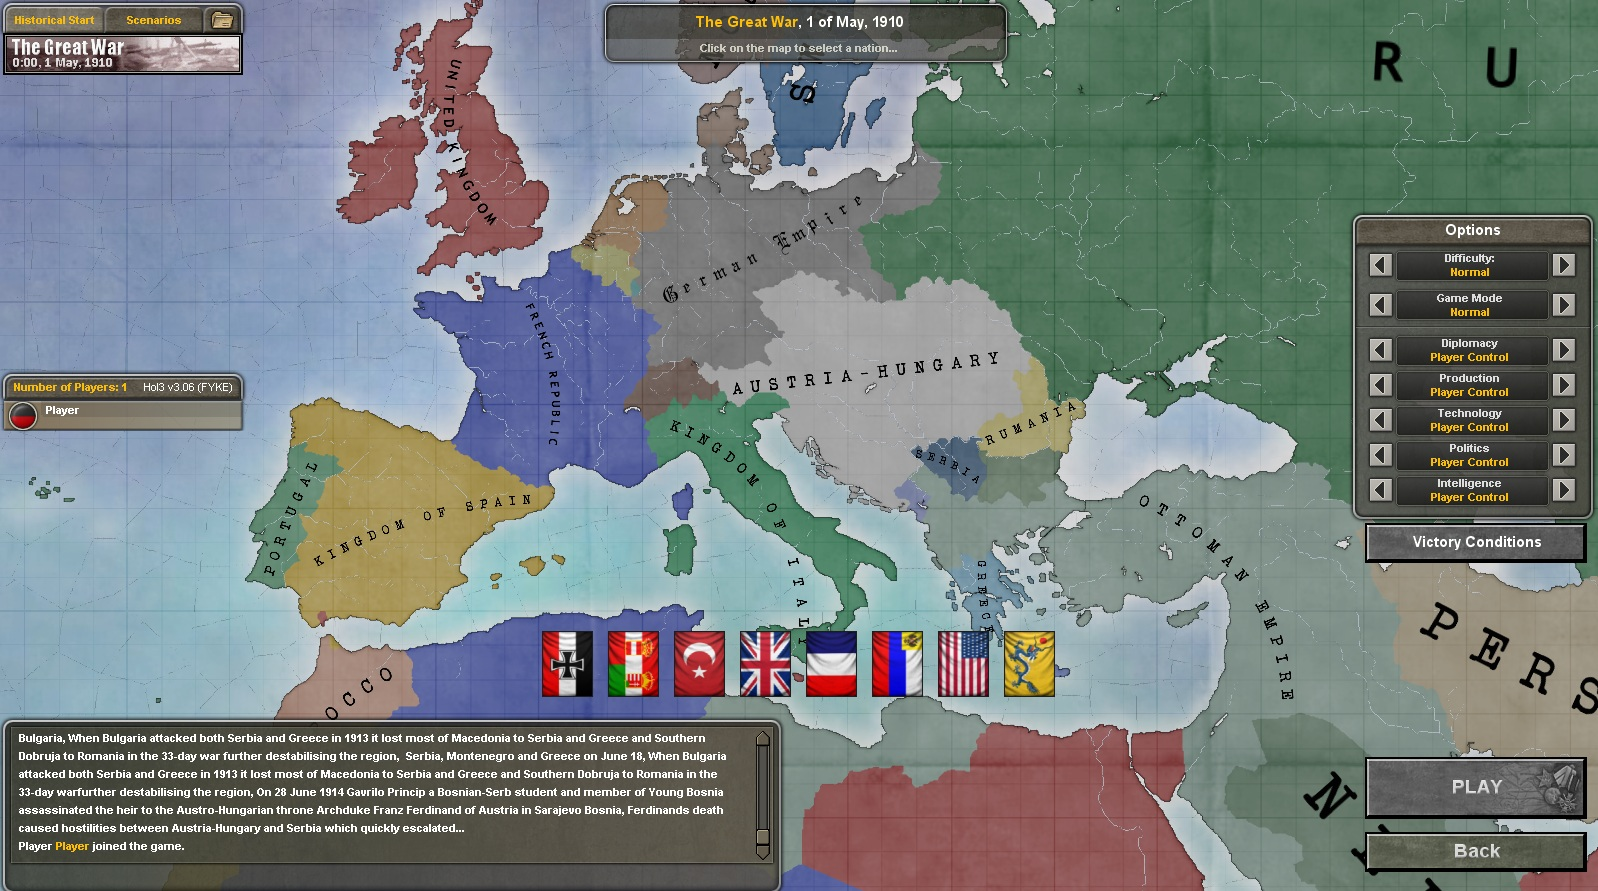 Europe 1910 image world war 1 mod for hearts of iron iii mod db original gumiabroncs Image collections